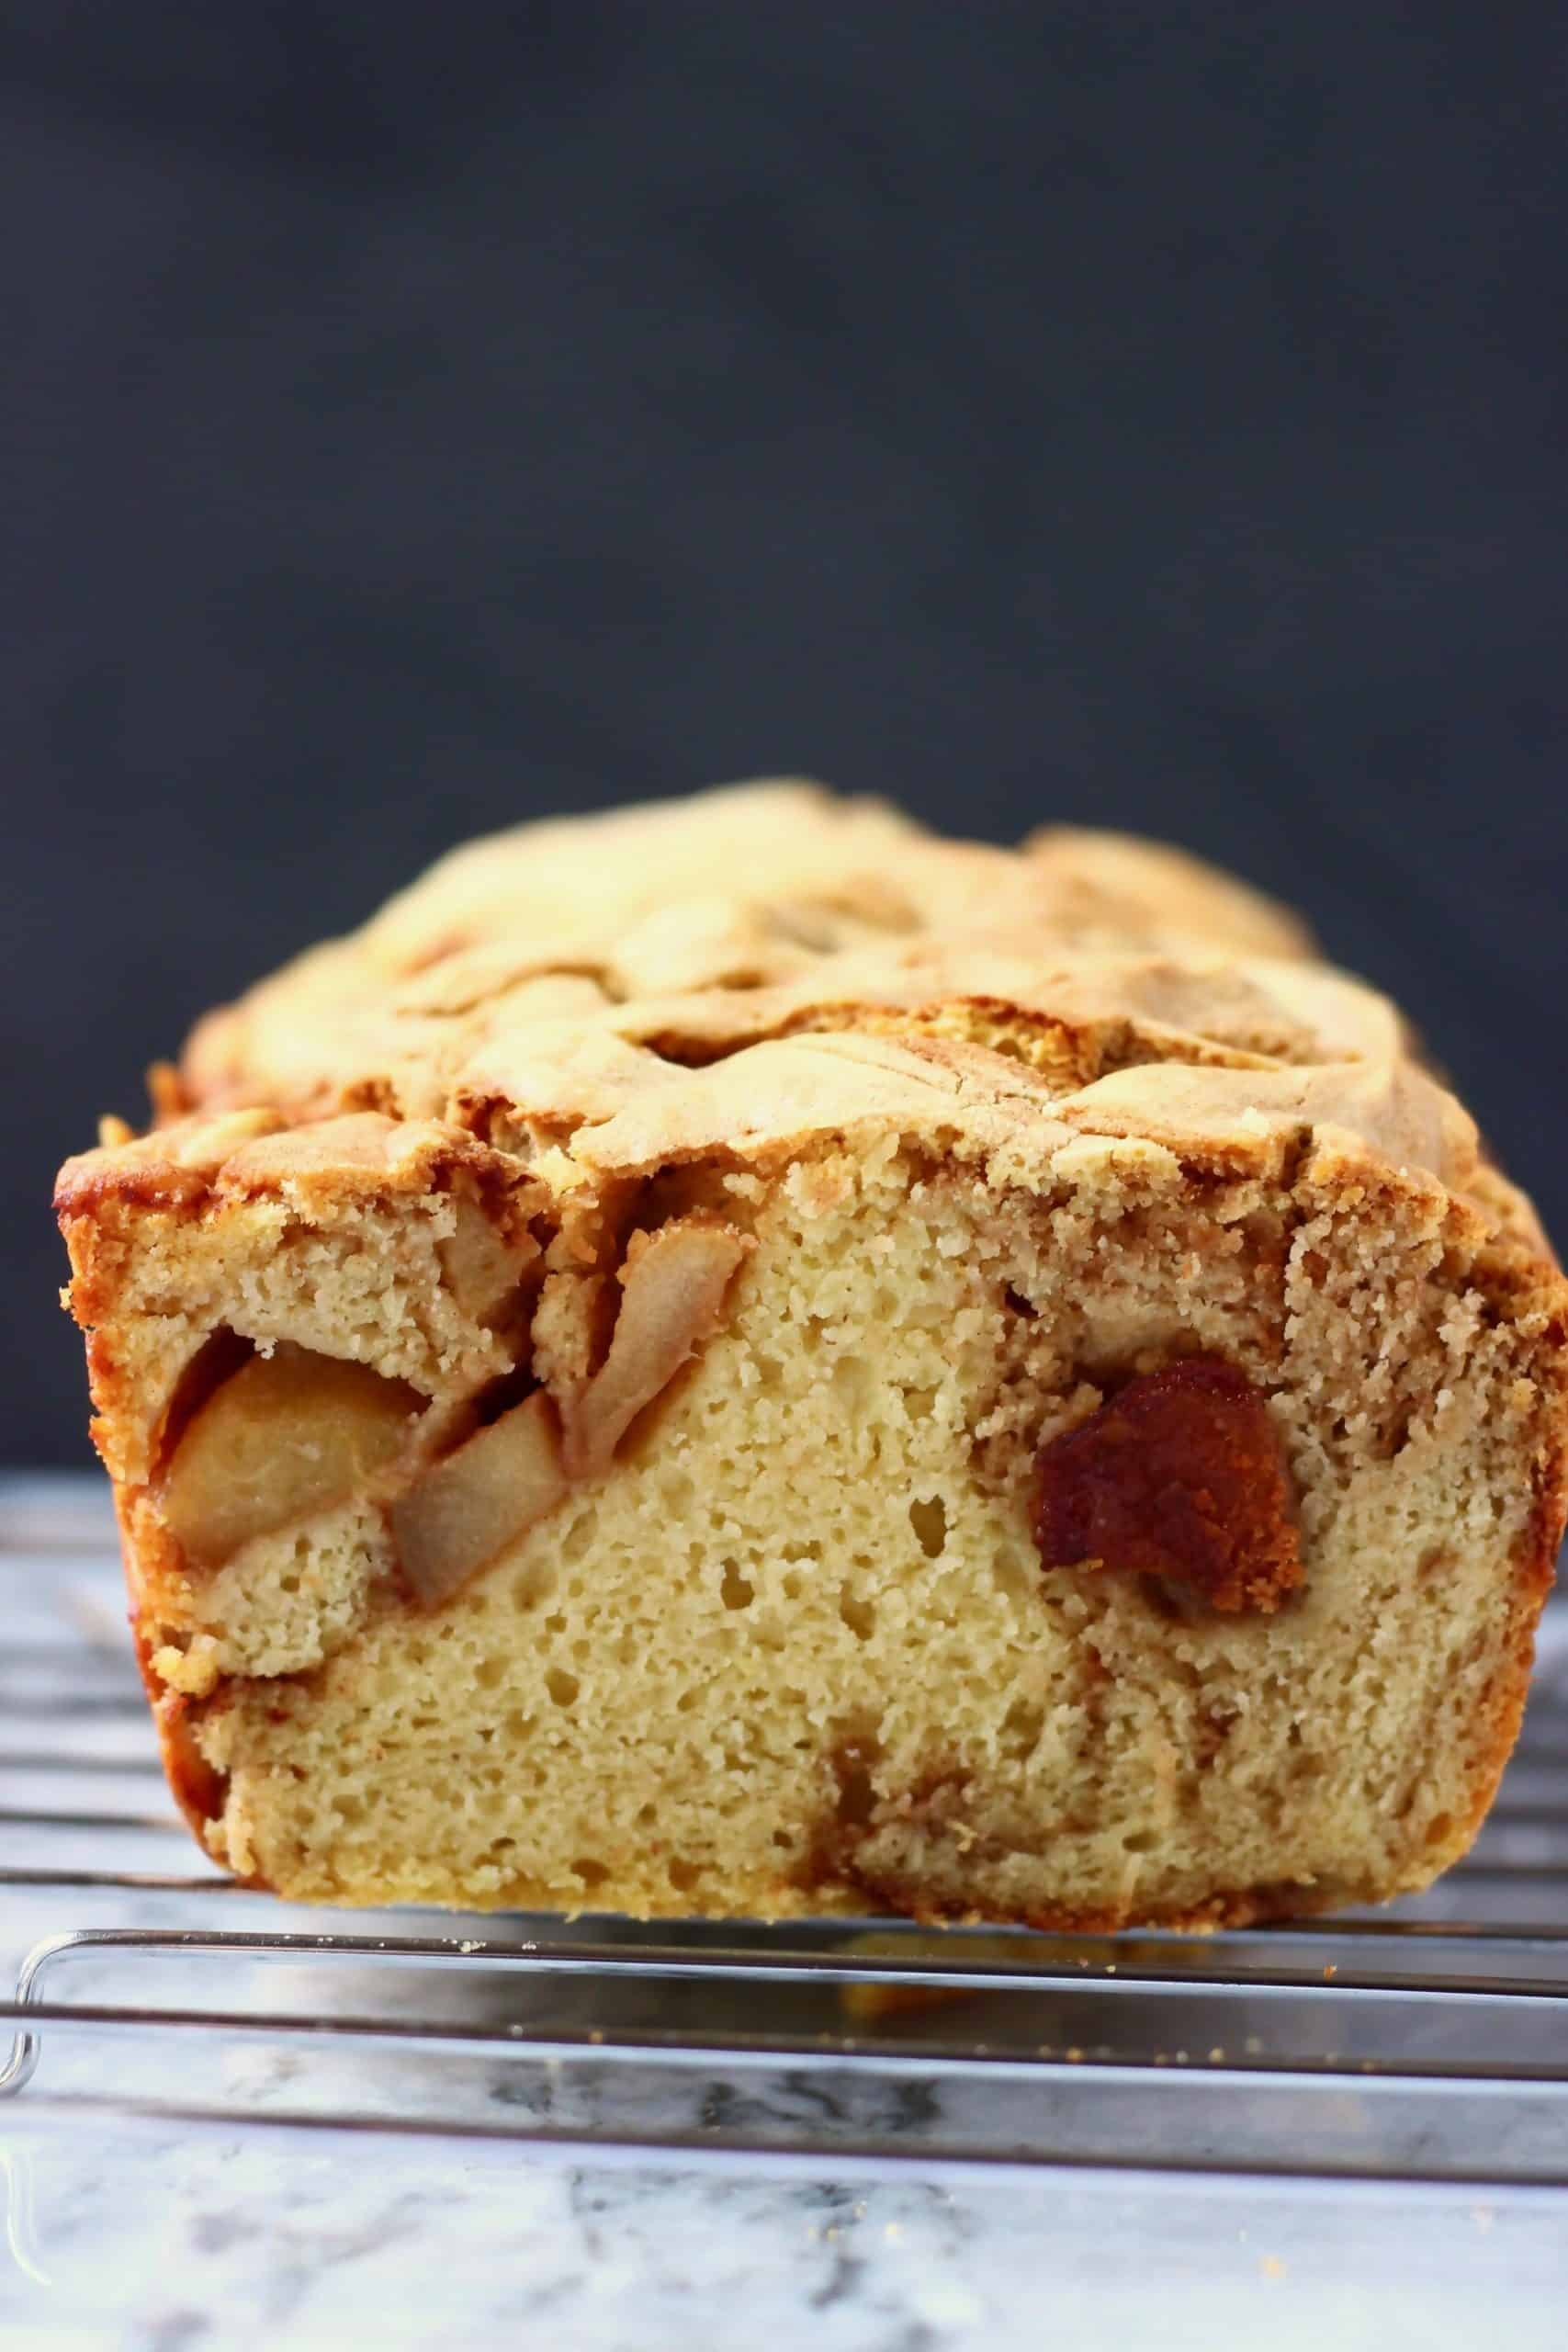 A loaf of bread with pieces of caramelised apples